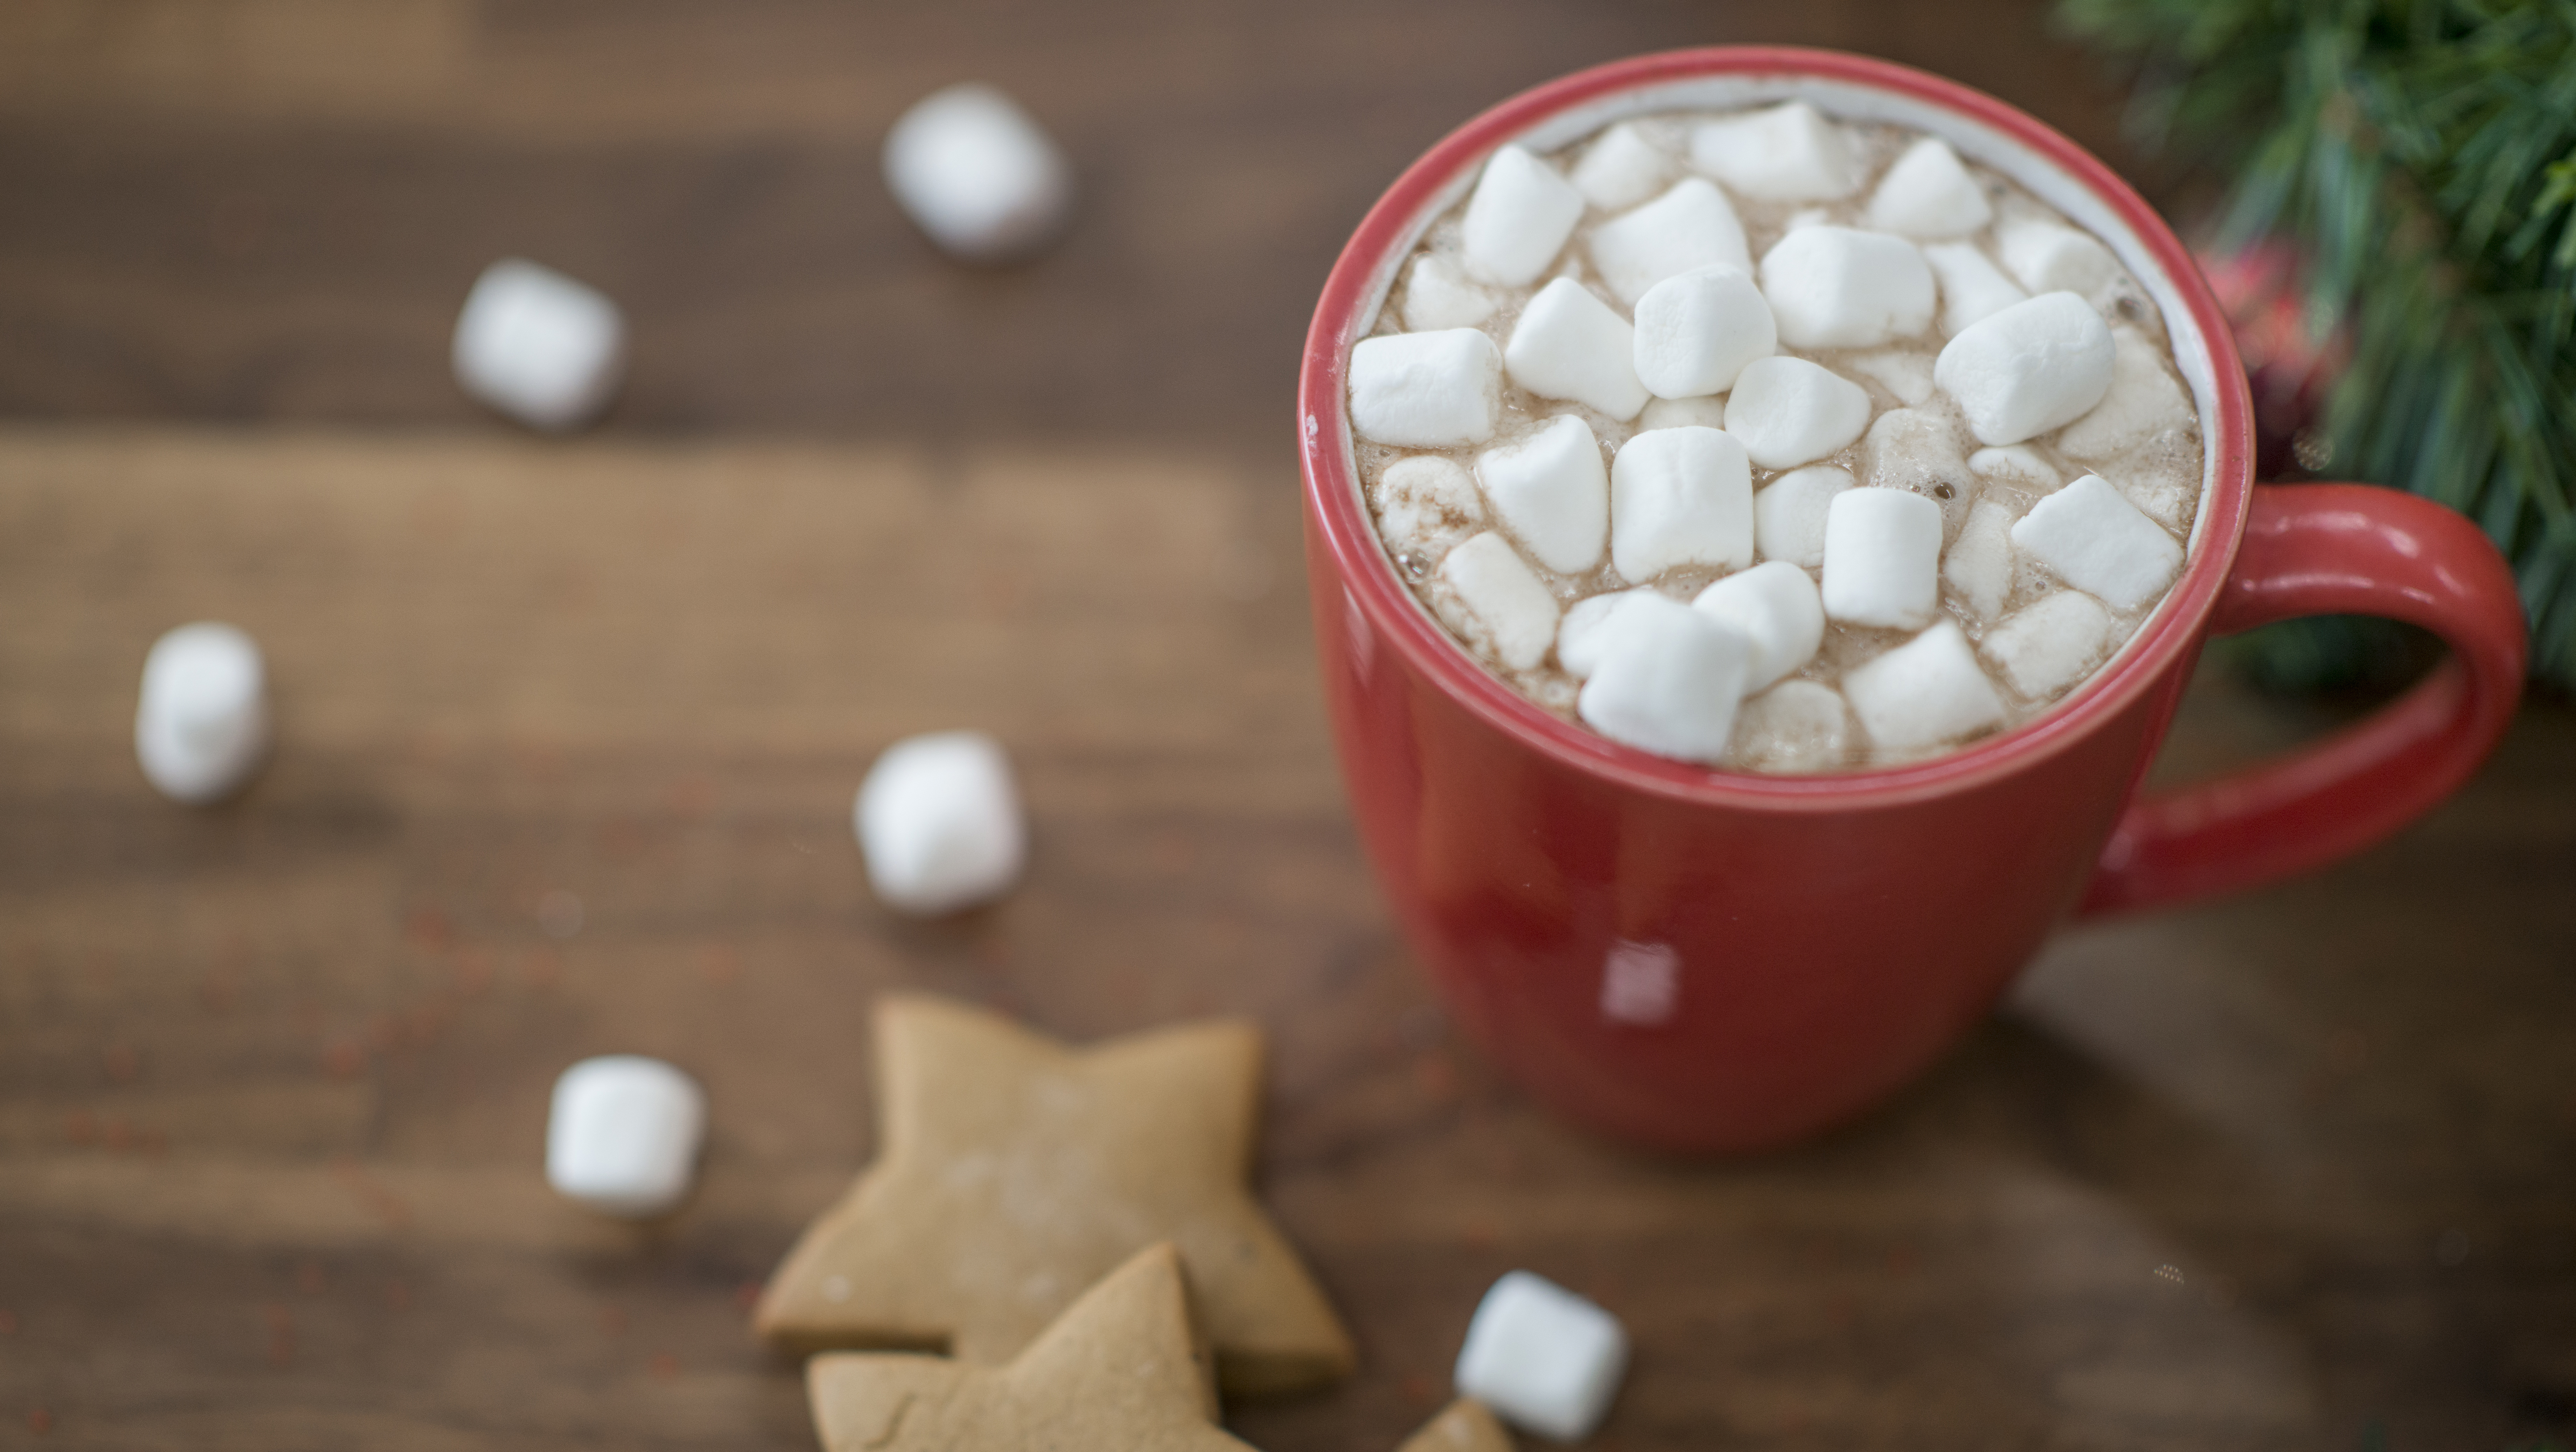 A mug of hot chocolate with marshmallows sits on a wooden table.